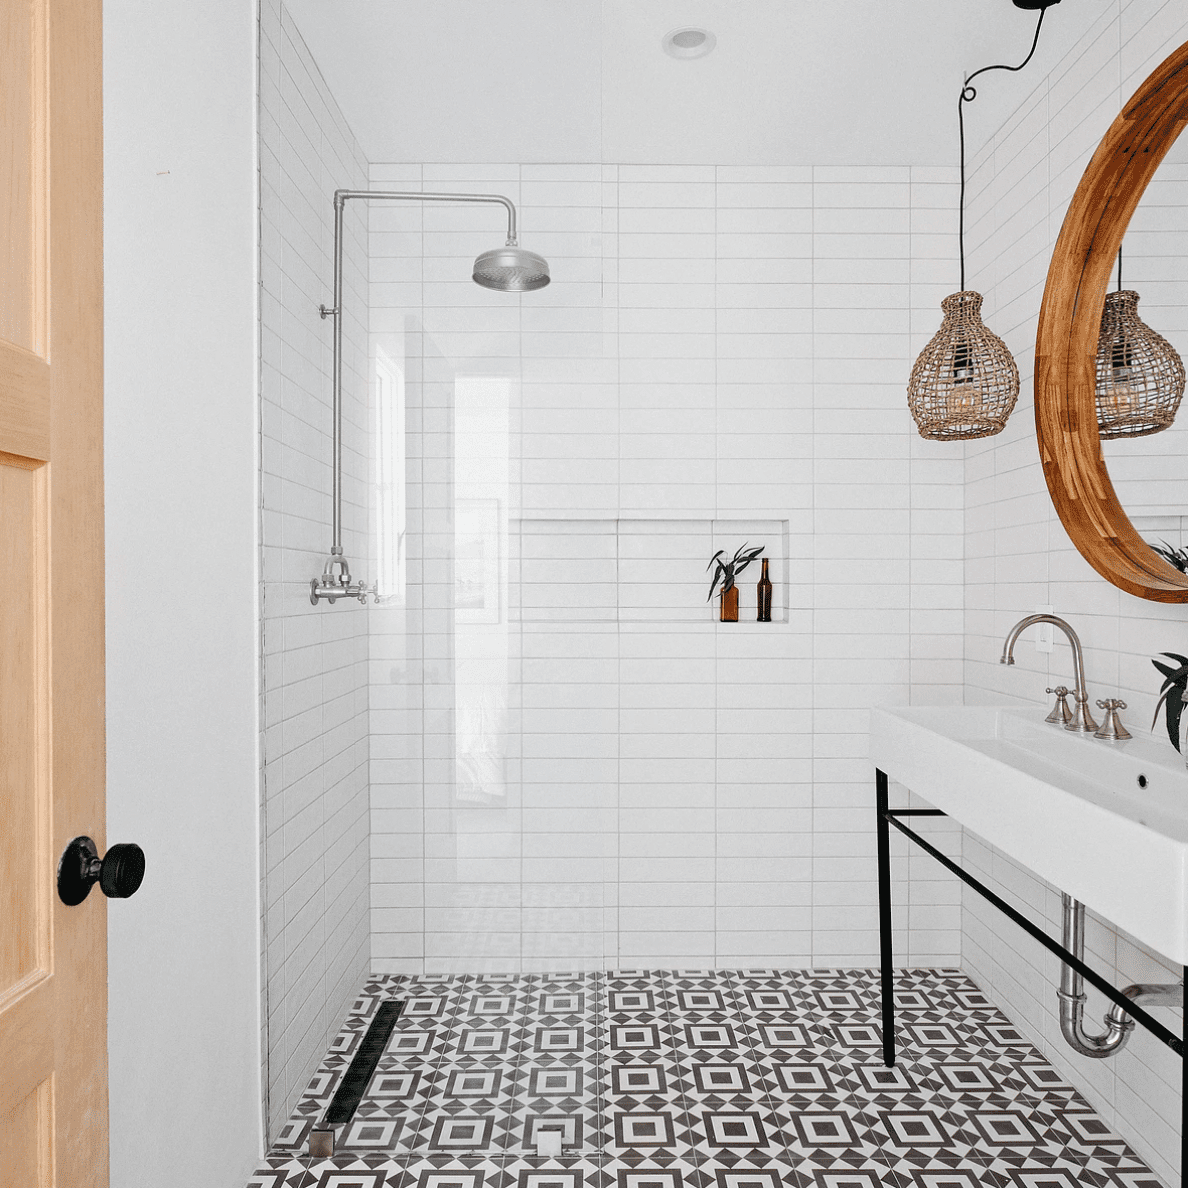 20 best blissfully gorgeous spa bathrooms